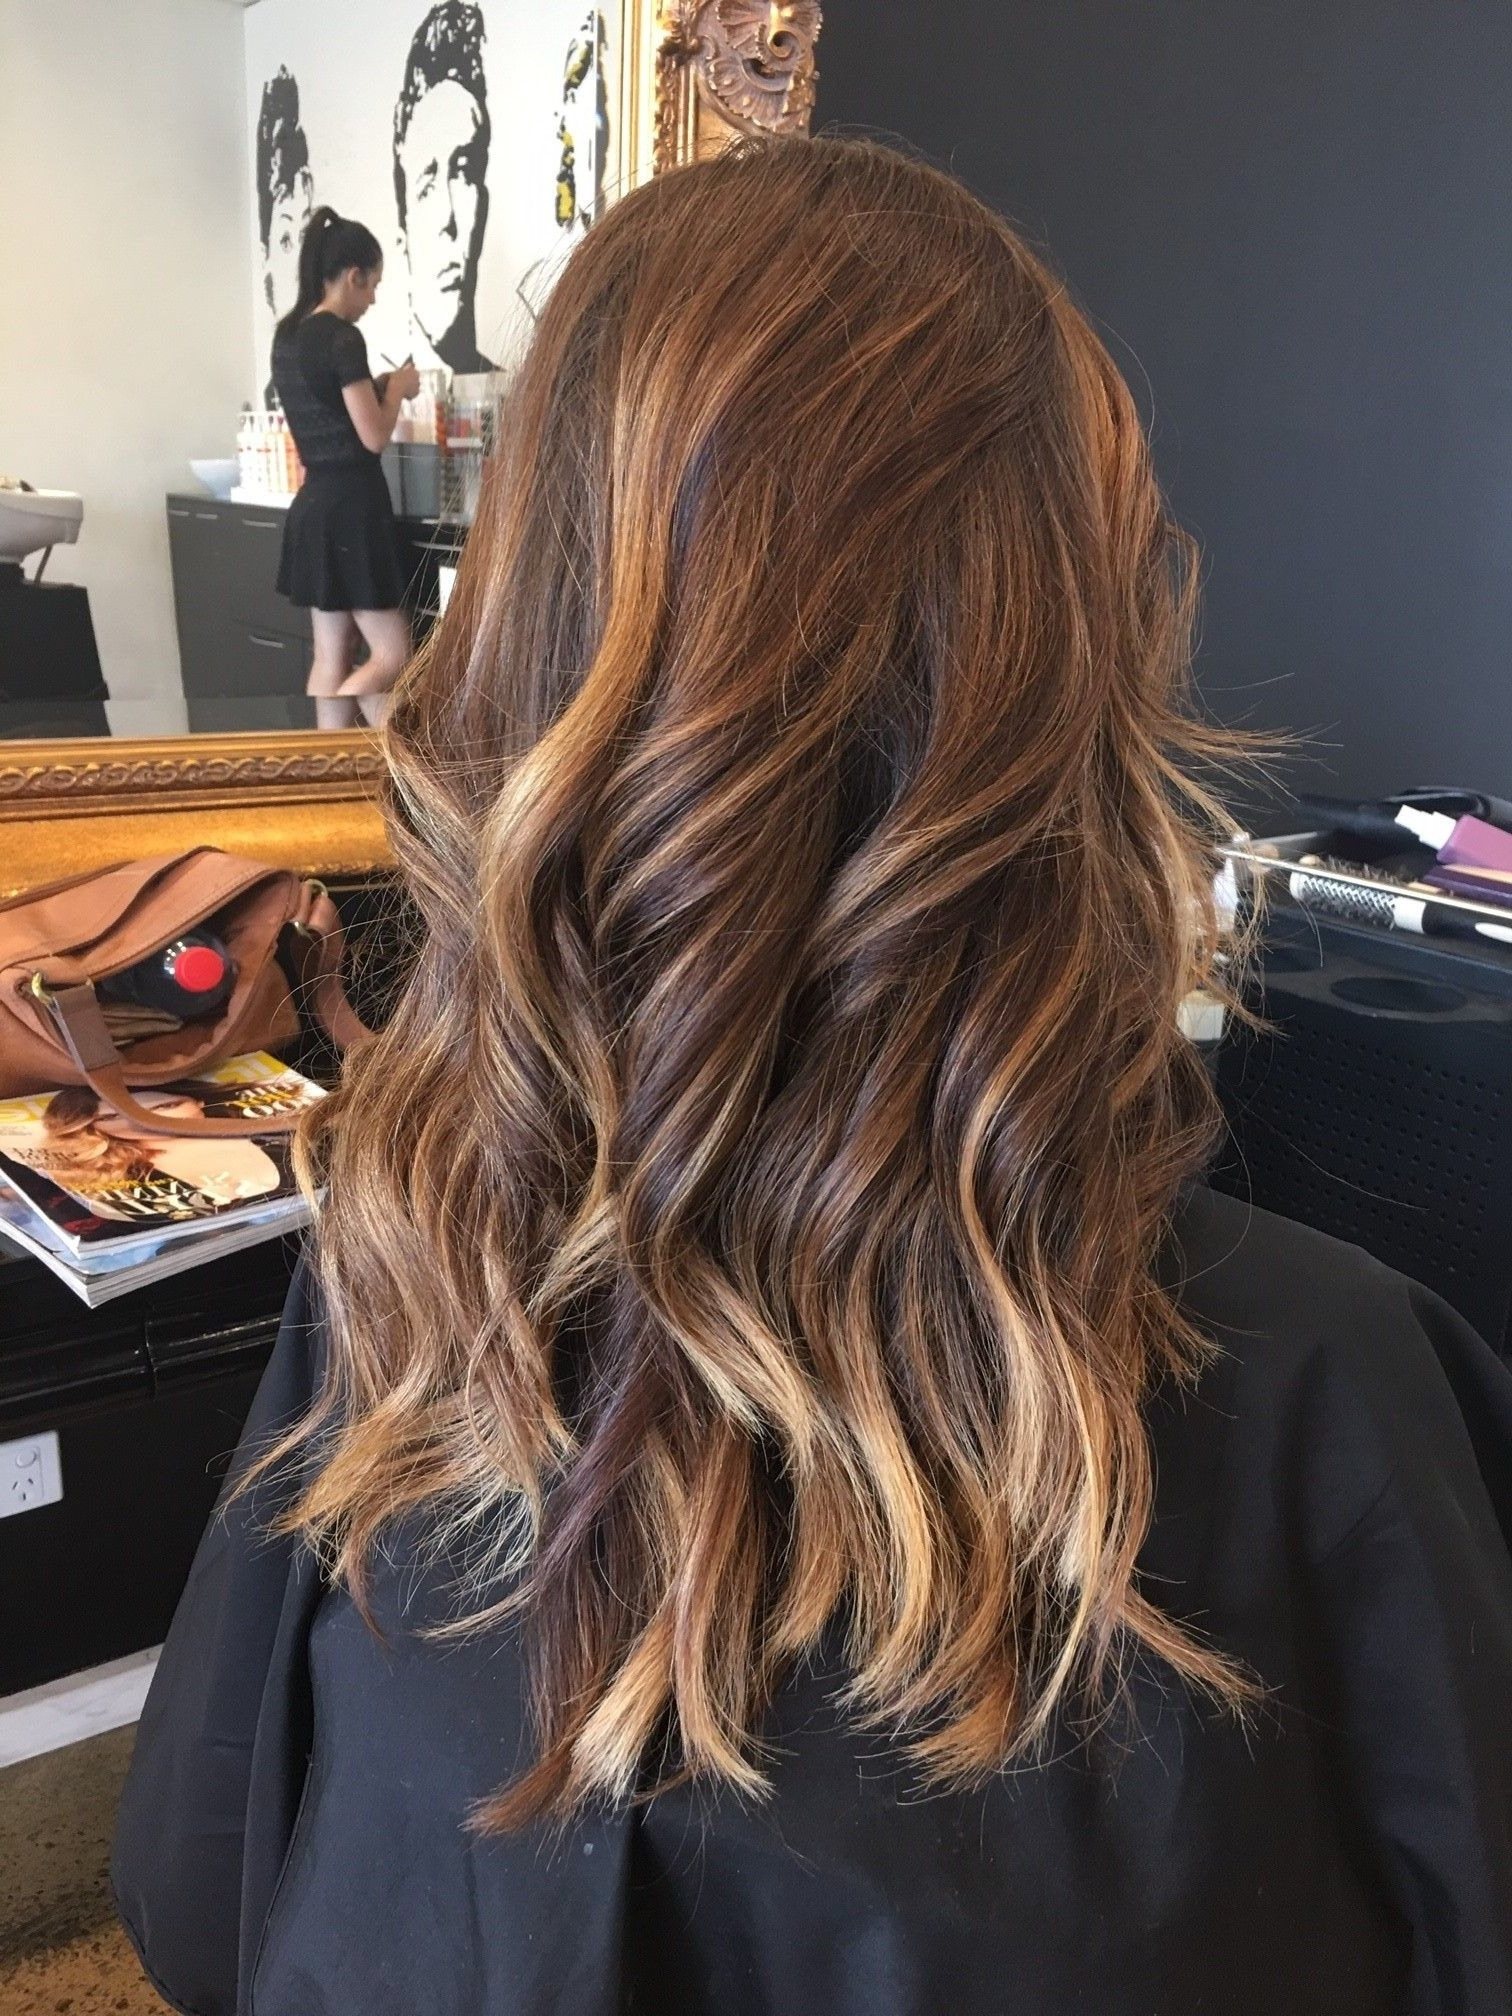 Well Known Tortoiseshell Curls Blonde Hairstyles With Regard To Kinky #curly #straight #hair #uros #mikic #tortoiseshell #adelaide (View 19 of 20)